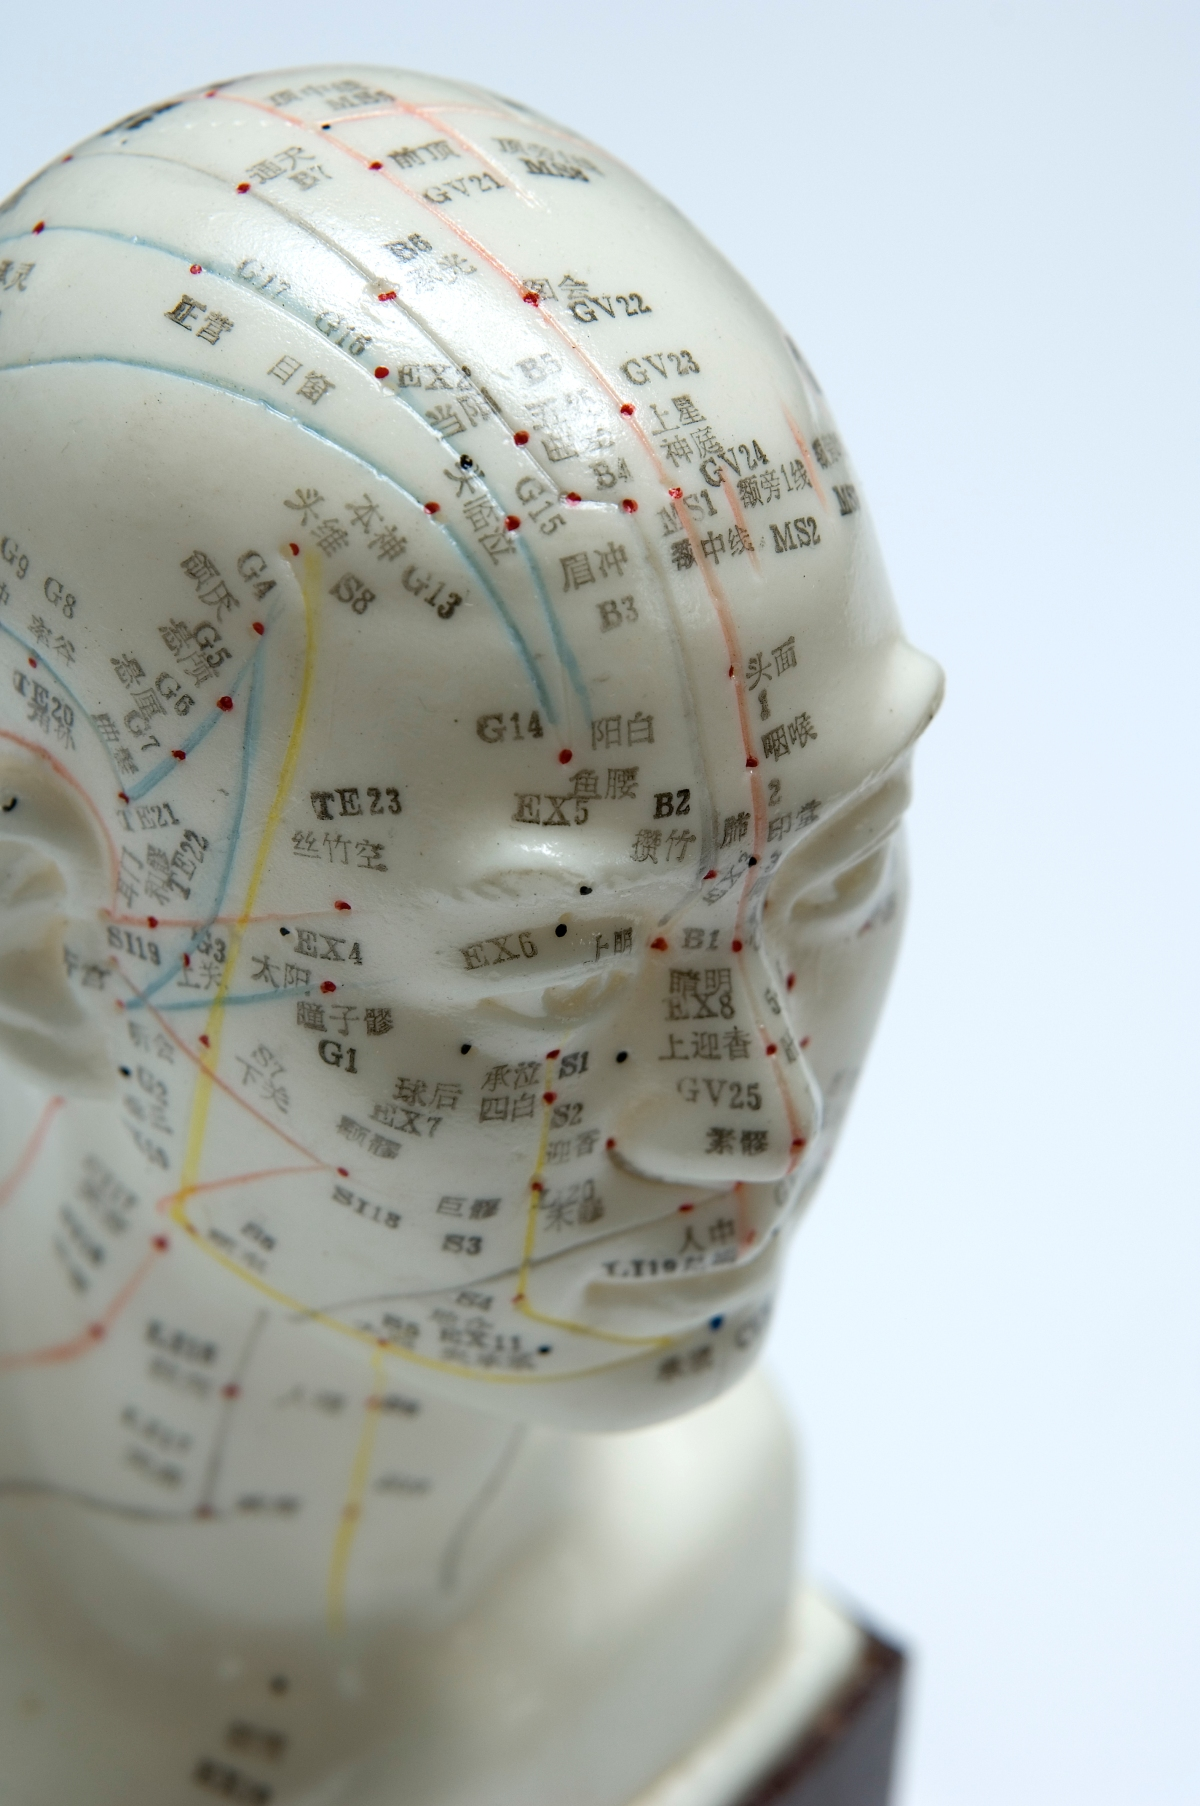 Migraine watch: Keeping up with the most current research for acupuncture